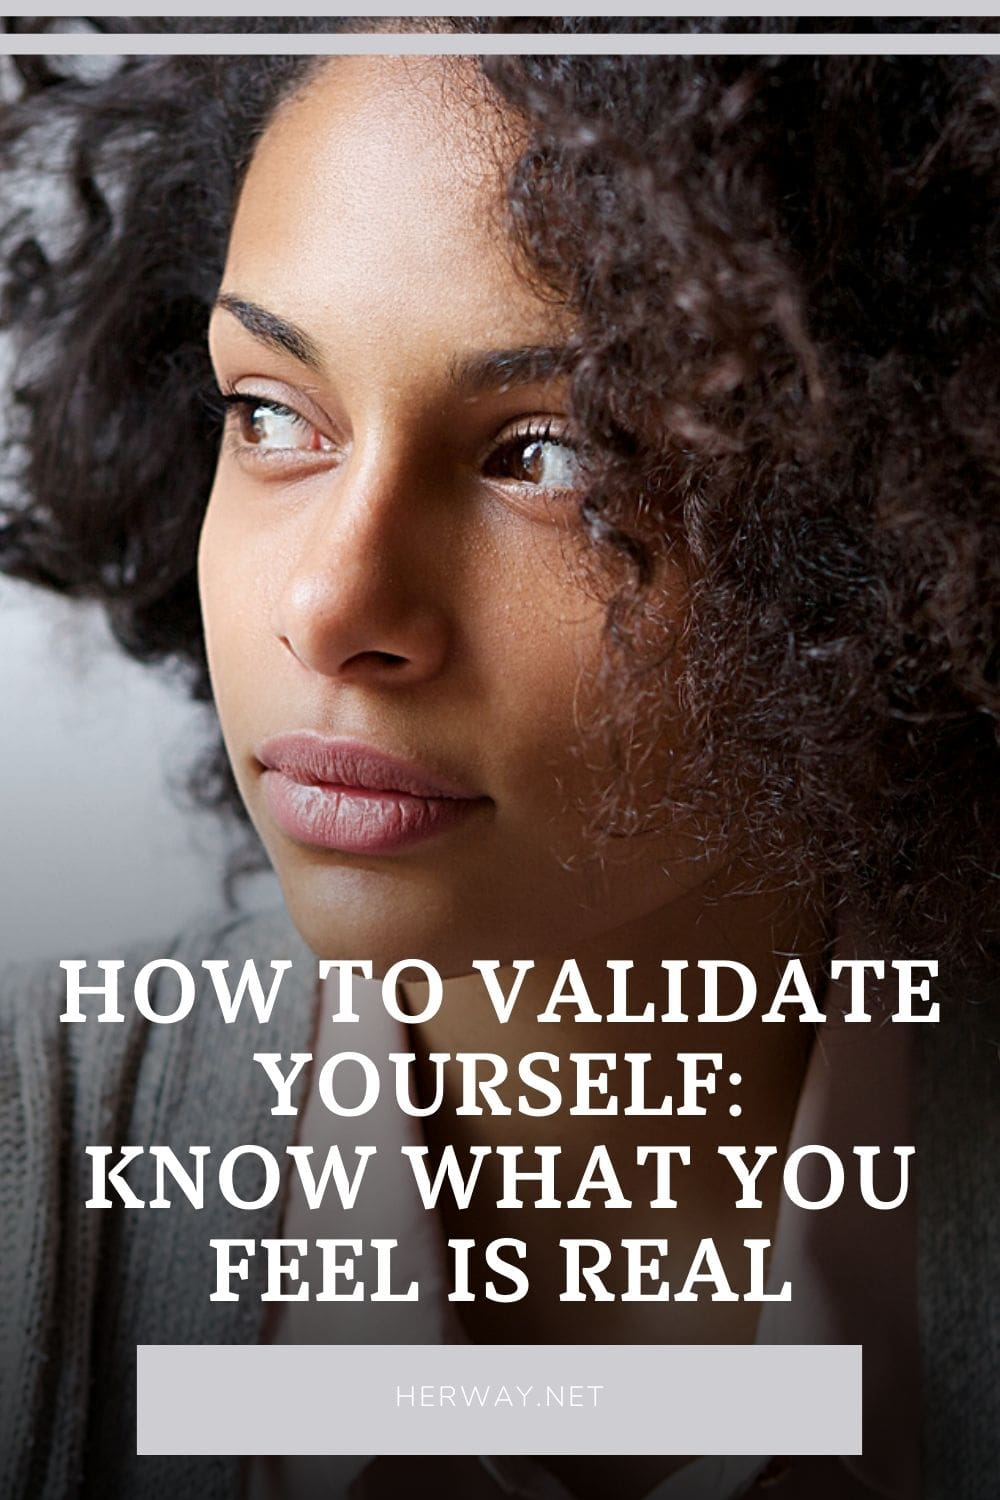 How To Validate Yourself: Know What You Feel Is Real